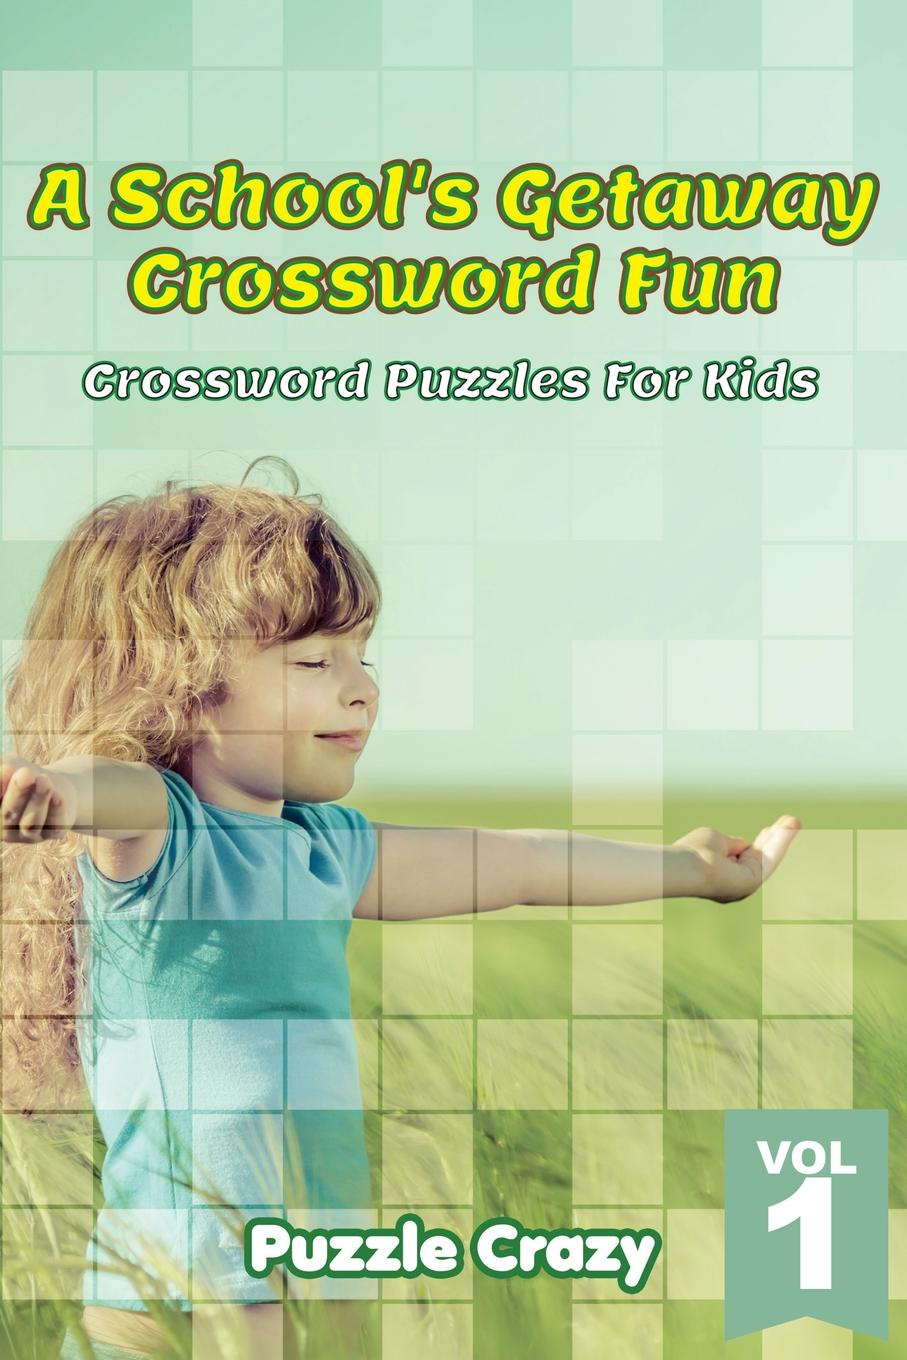 Puzzle Crazy A School.s Getaway Crossword Fun Vol 1. Crossword Puzzles For Kids wooden fun ball puzzle toy for kids wood